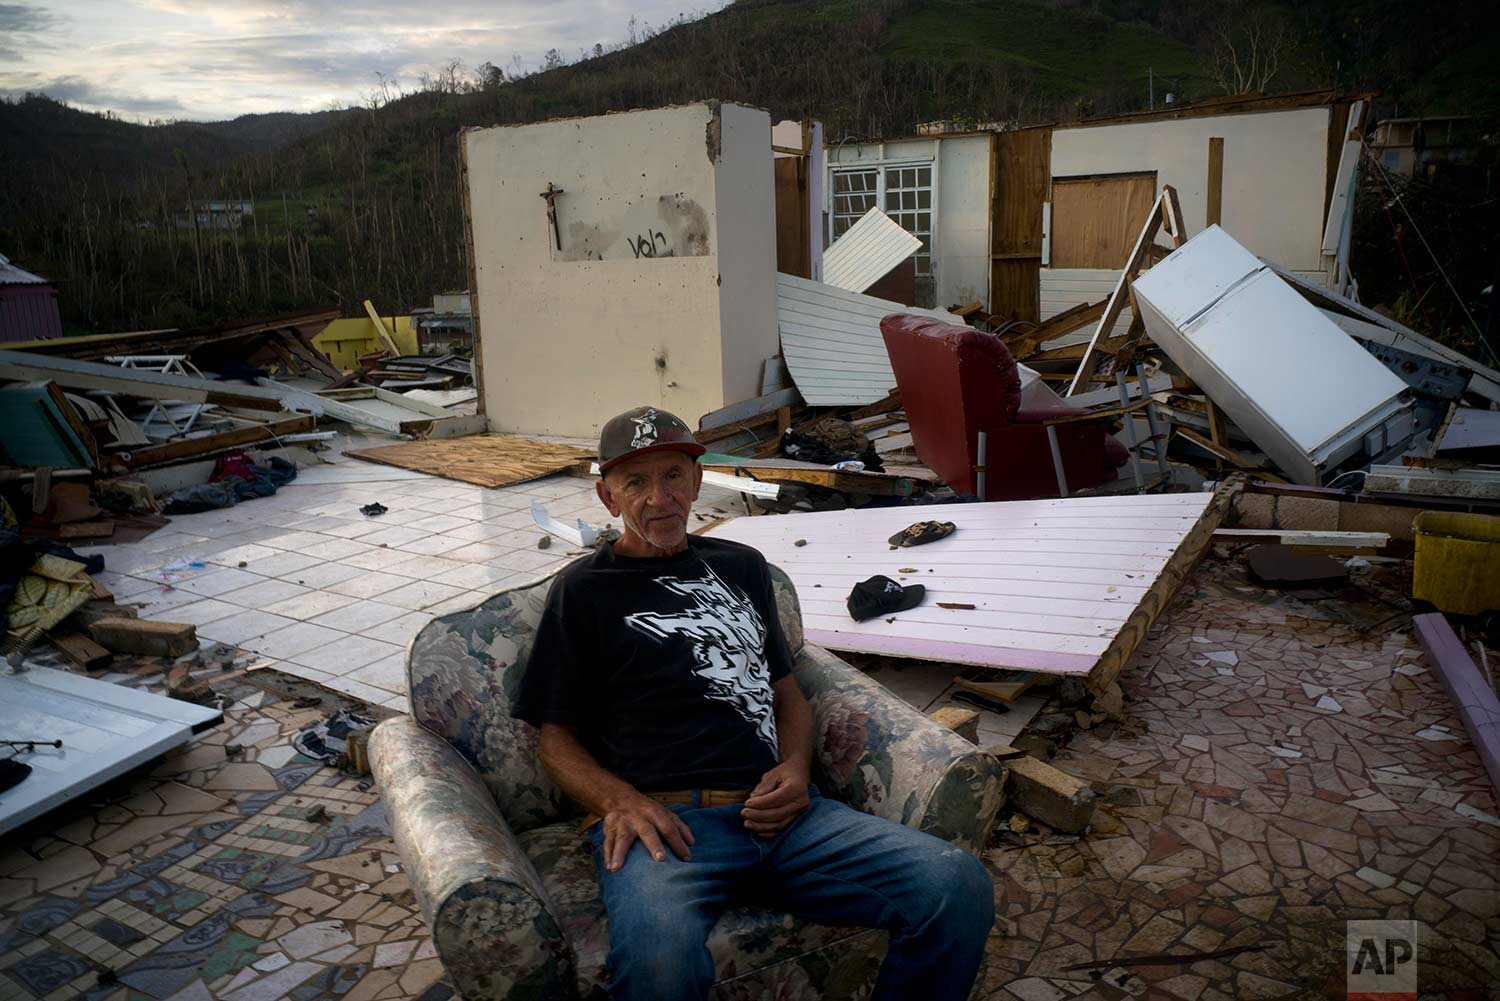 Luis Cosme poses sitting in an armchair in what is left of his house destroyed by Hurricane Maria, in Morovis, Puerto Rico, Sunday, Oct. 1, 2017. (AP Photo/Ramon Espinosa)